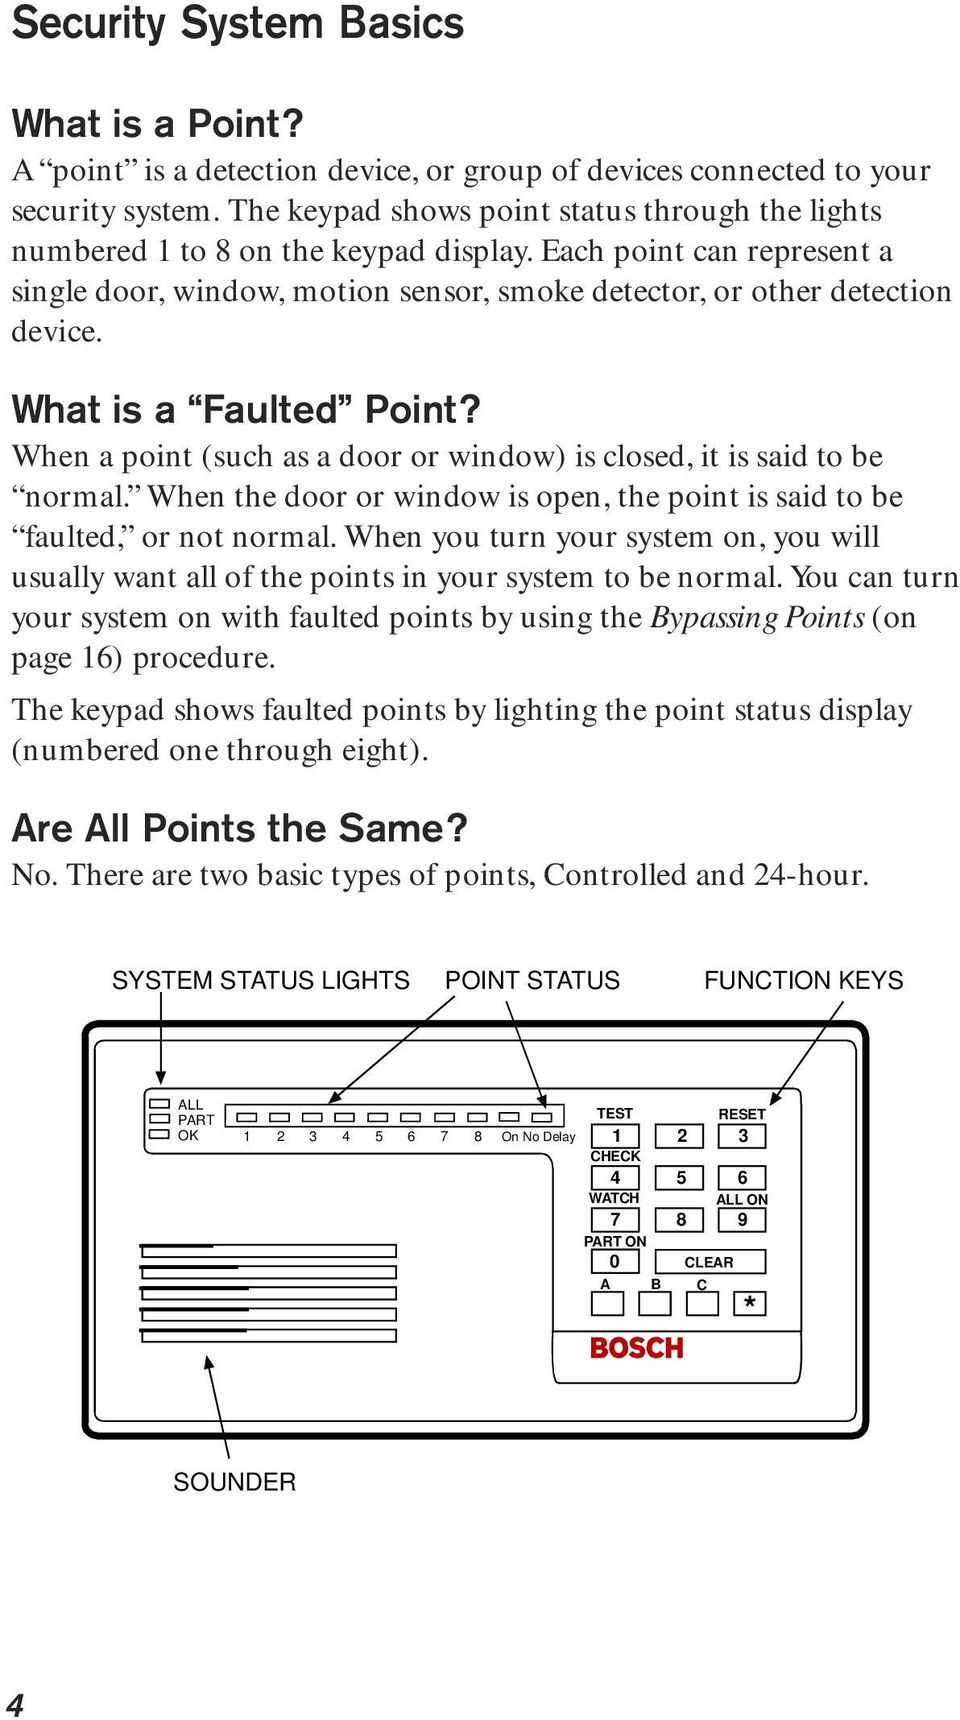 What is a Faulted Point? When a point (such as a door or window) is closed, it is said to be normal. When the door or window is open, the point is said to be faulted, or not normal.